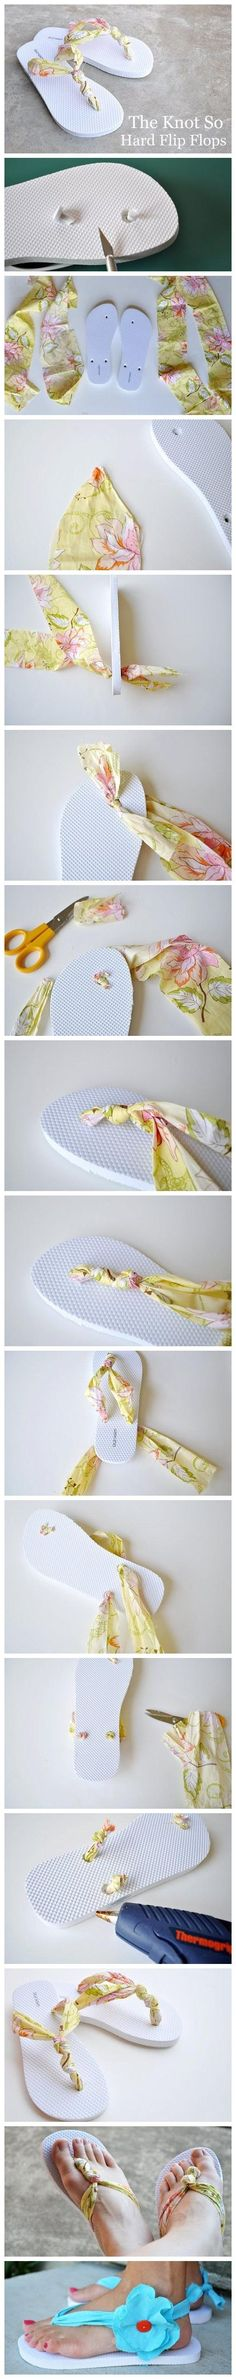 DIY Recycled Flip-Flops.  Make brand new flip-flops with your broken flip-flops with several strips of material.